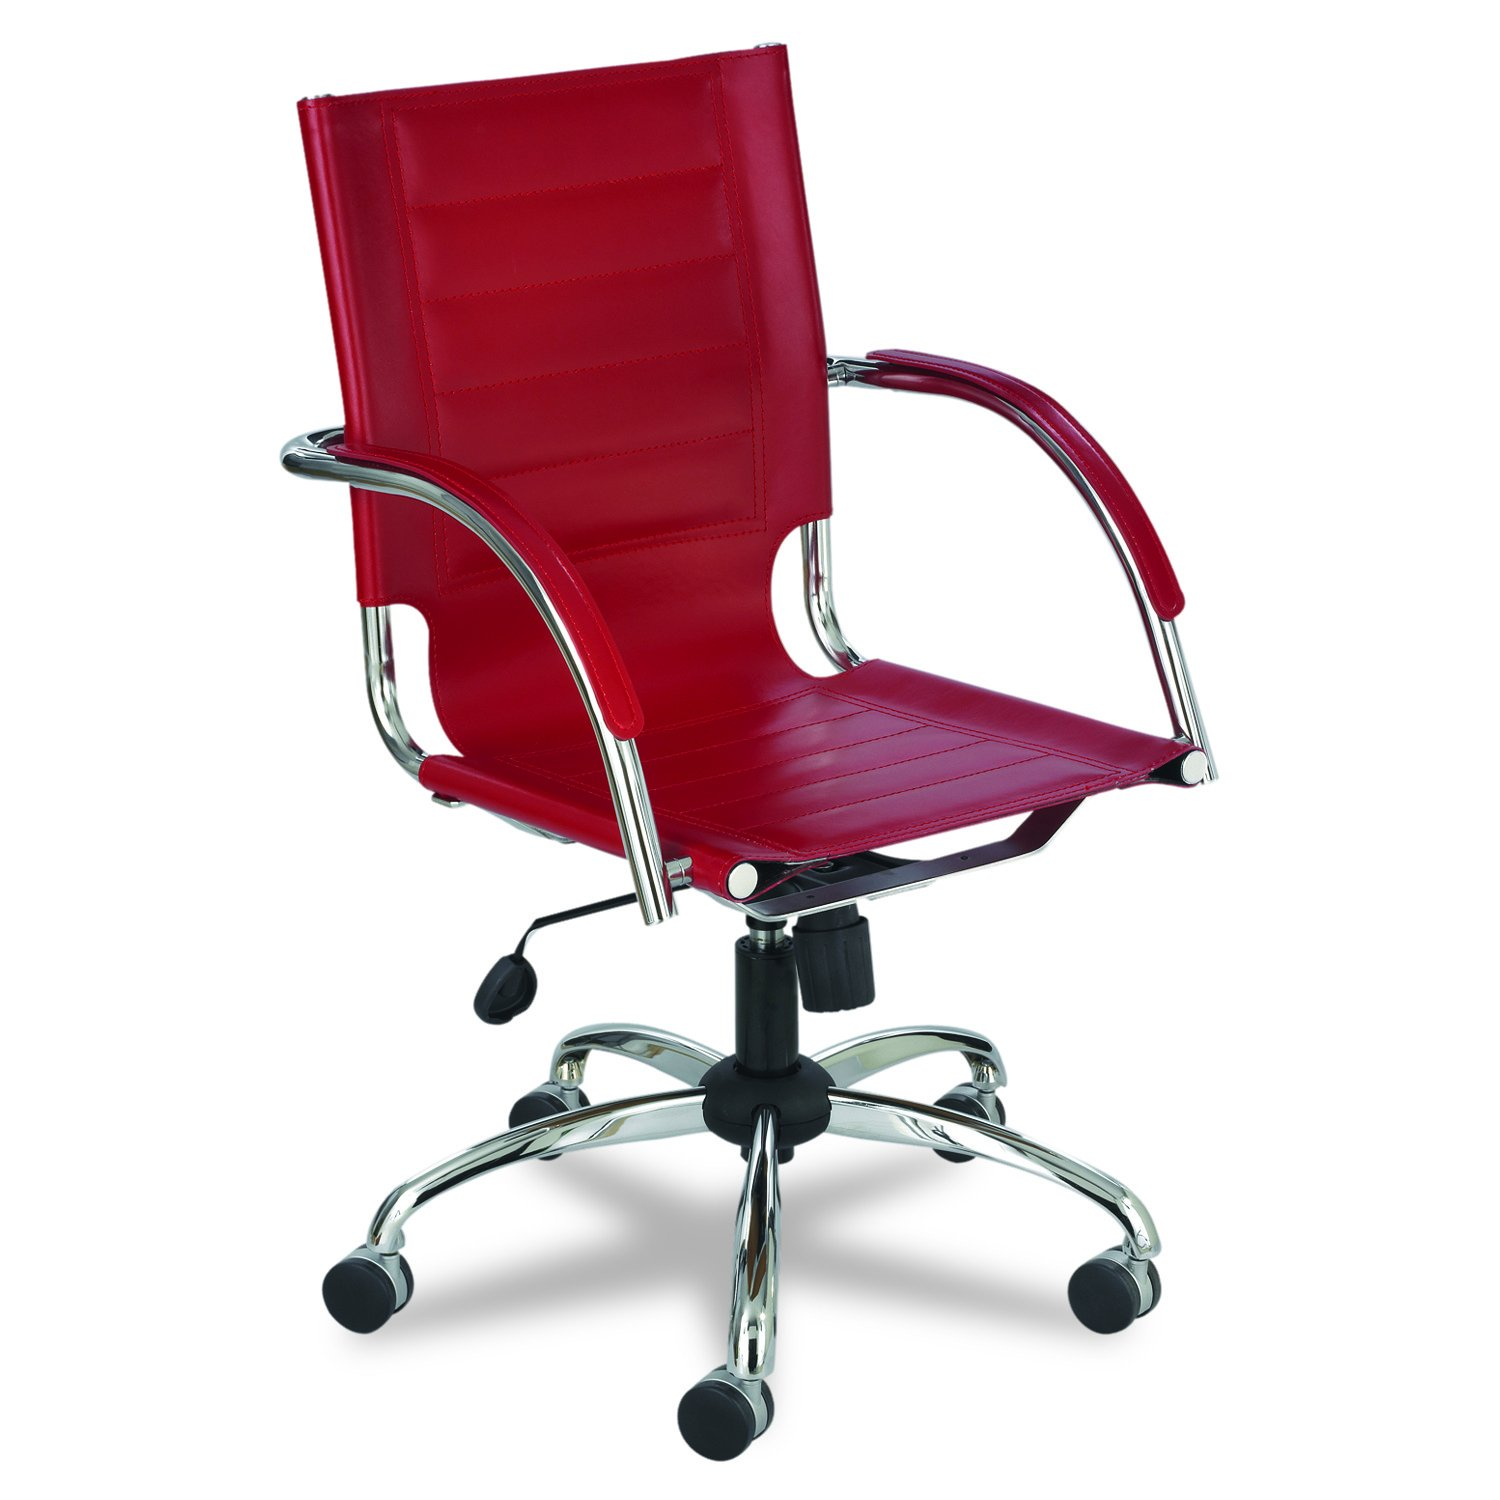 Safco Products Flaunt Managers Leather Chair, Red